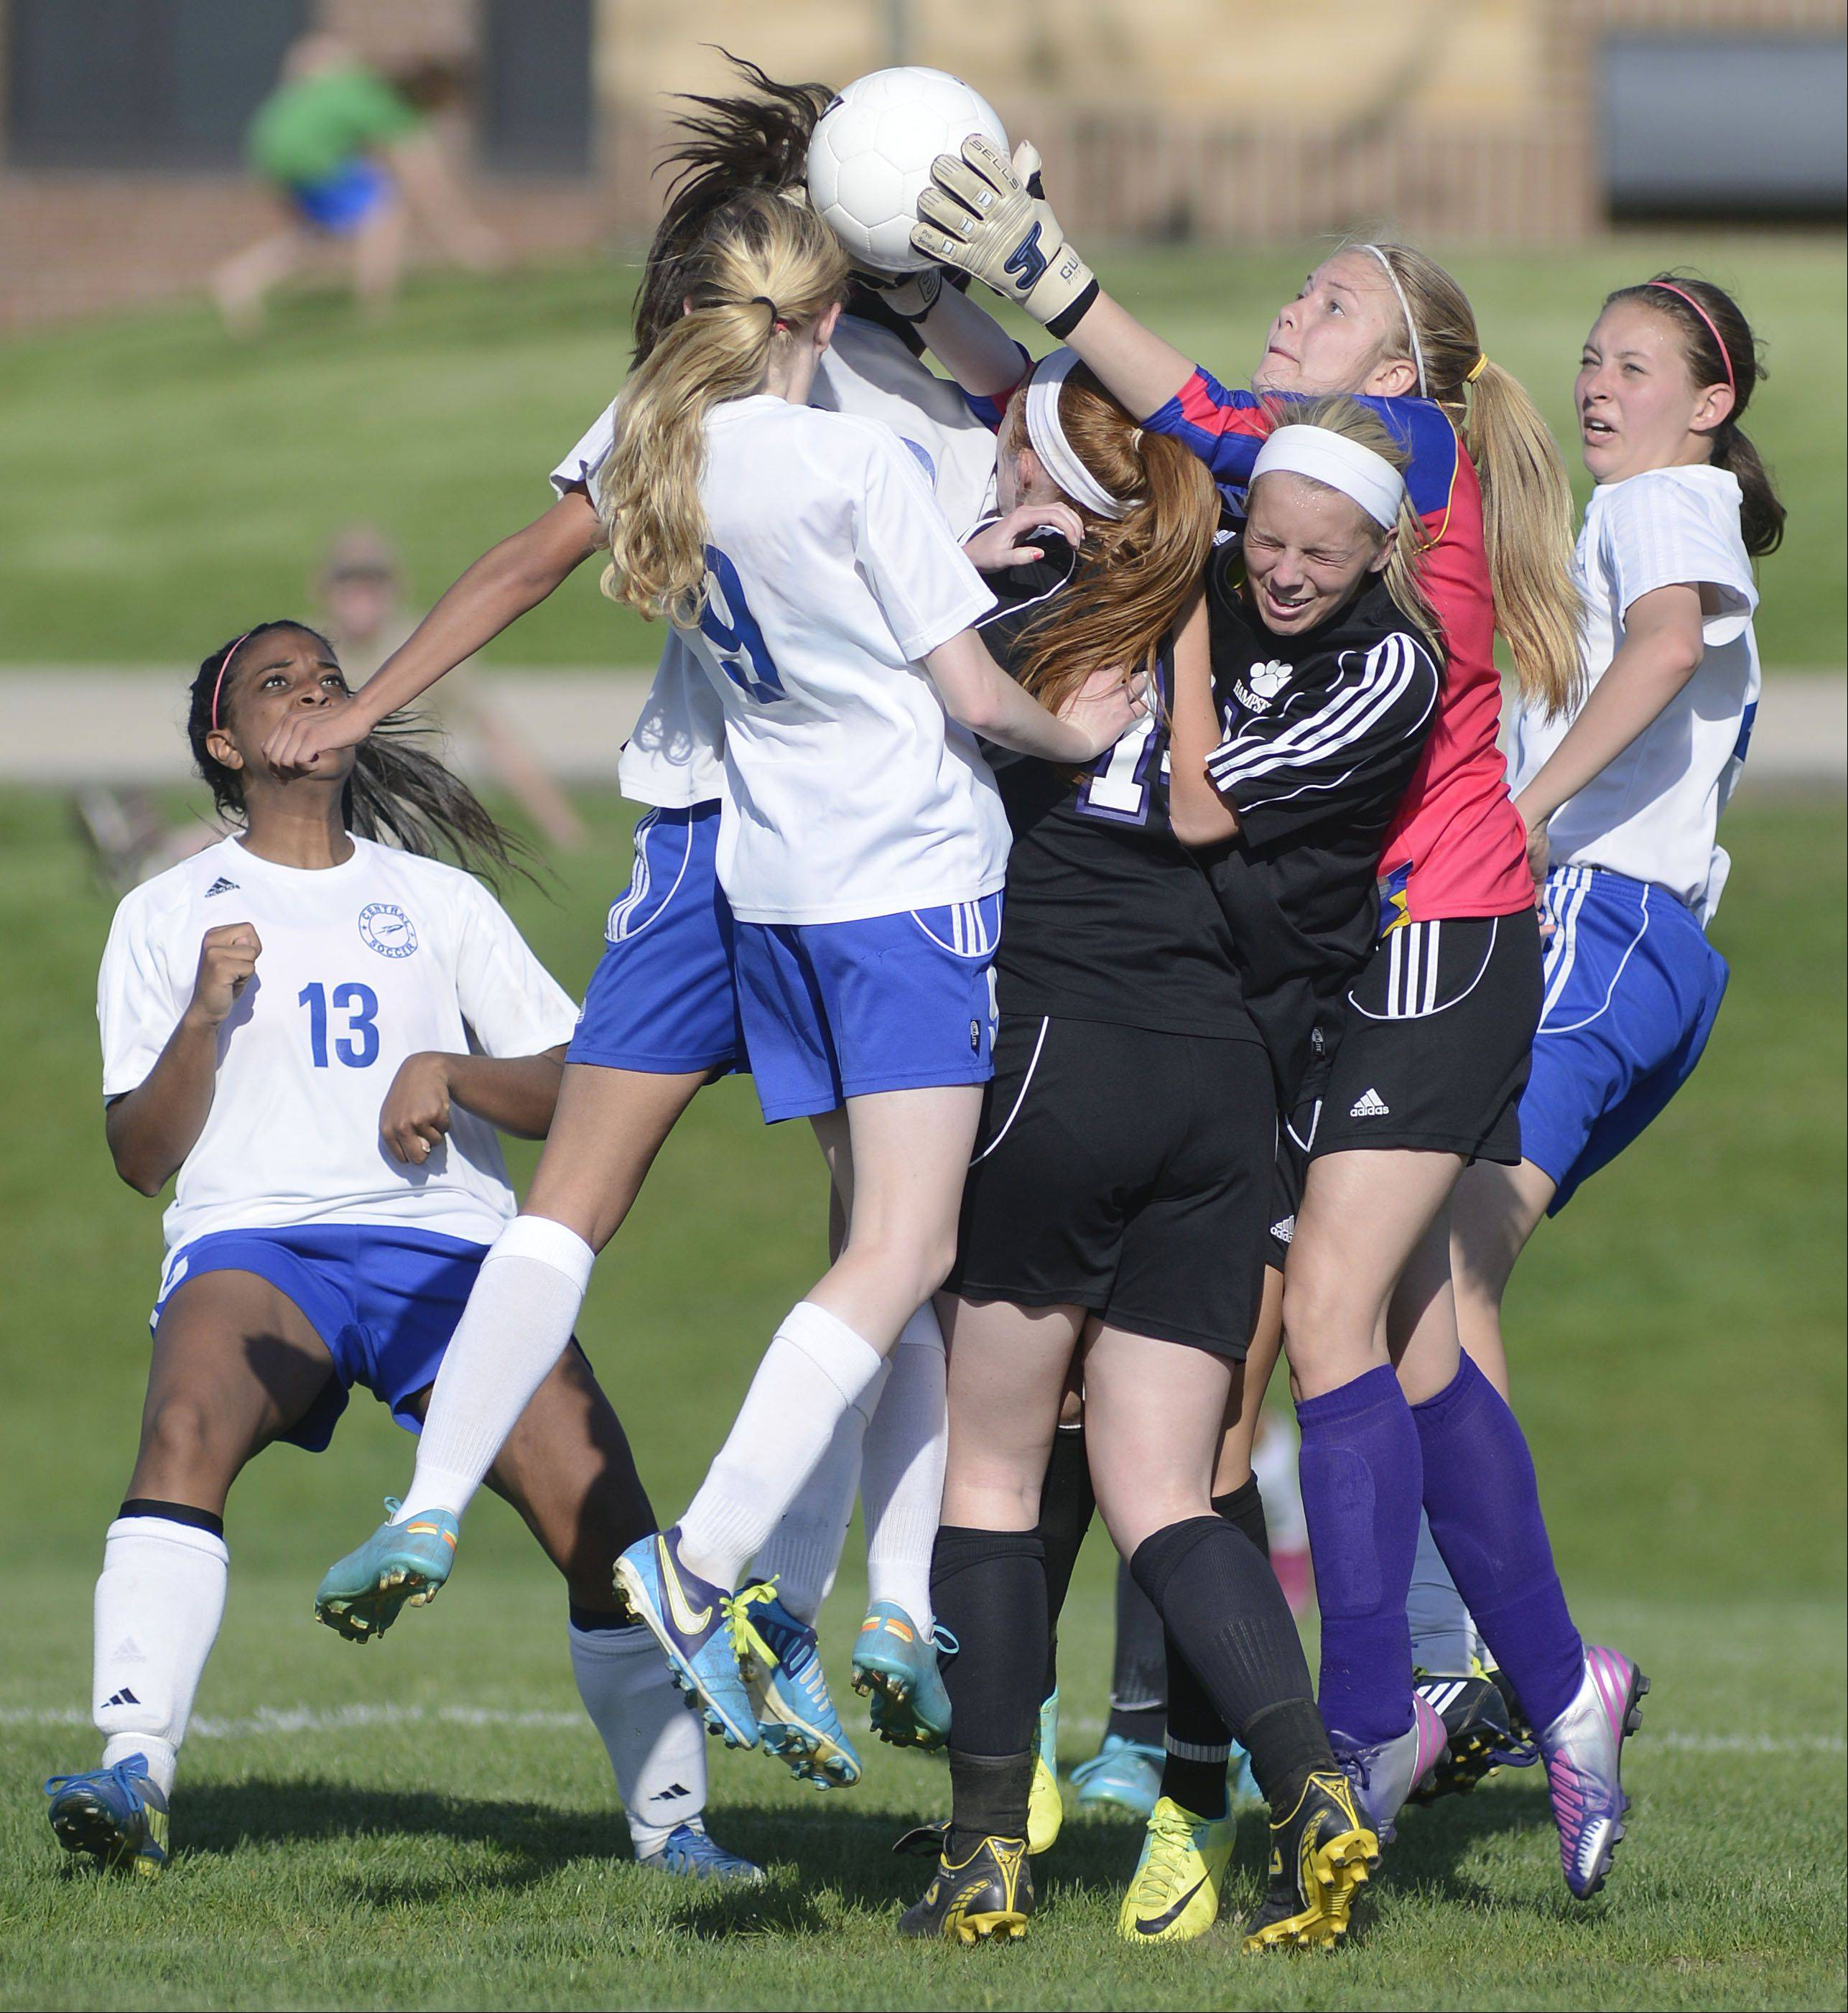 Burlington Central's Cali Andrew (9) collies with Hampshire's Jessica Boutin and Paige Palubicki as Hampshire goalie Arianna Rominski leaps to block a hit in the second half of the Class 2A regional semifinal on Tuesday.